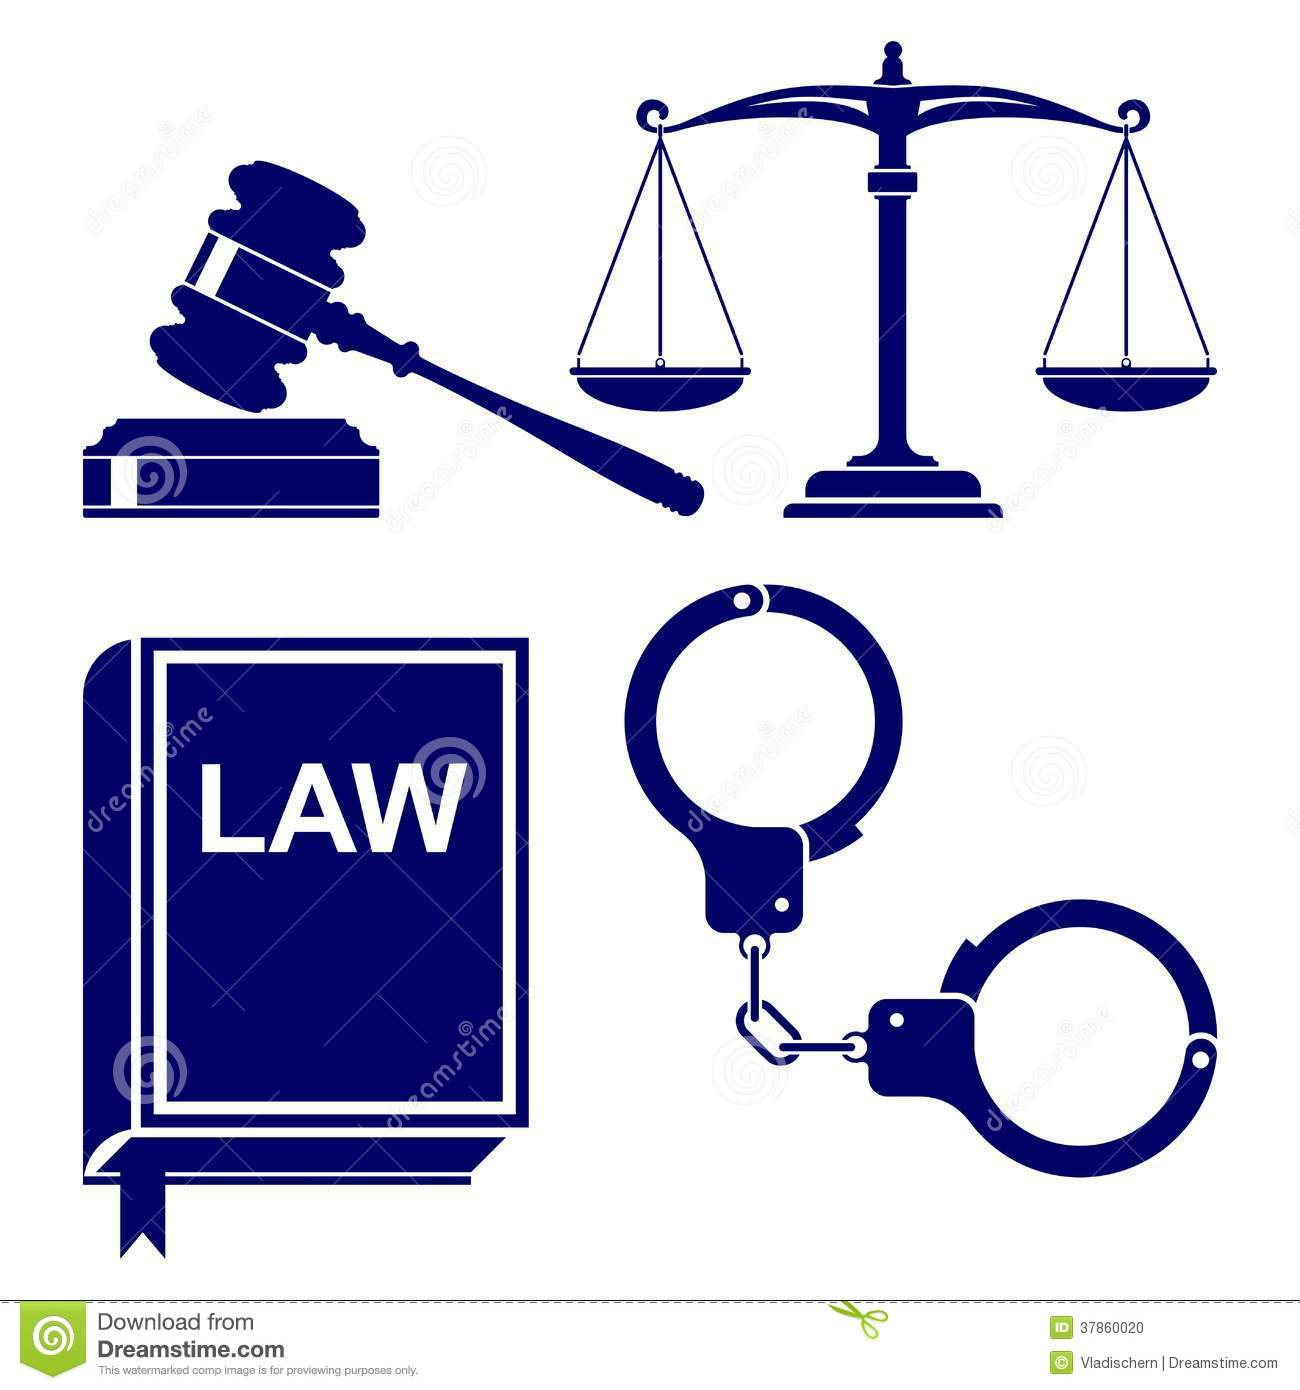 law-abstract-icon-set-vector-illustration-37860020.jpg